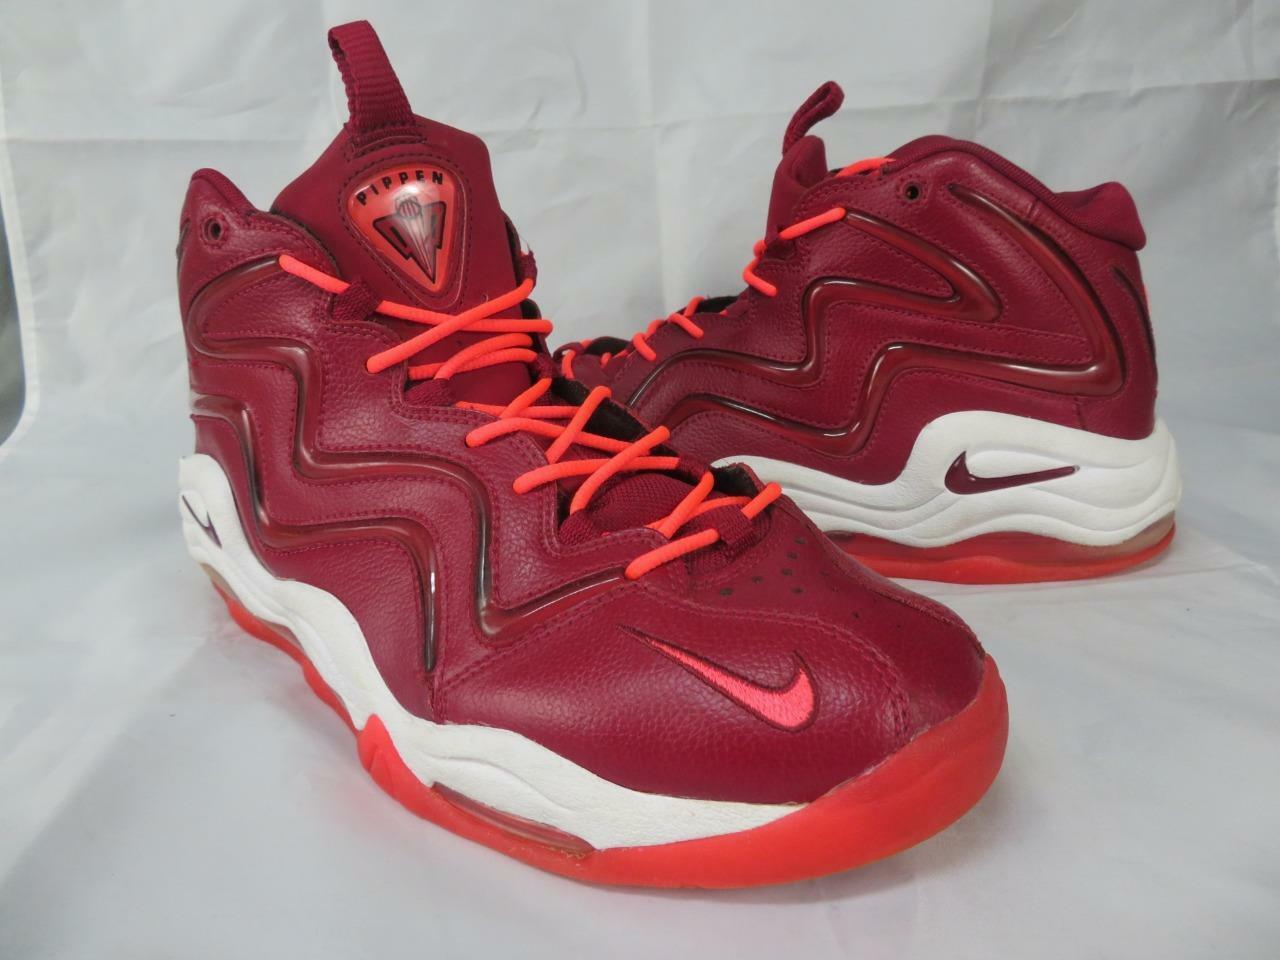 Nike Air Pippen 1 Size 11 Red Sneaker Shoes No Insoles